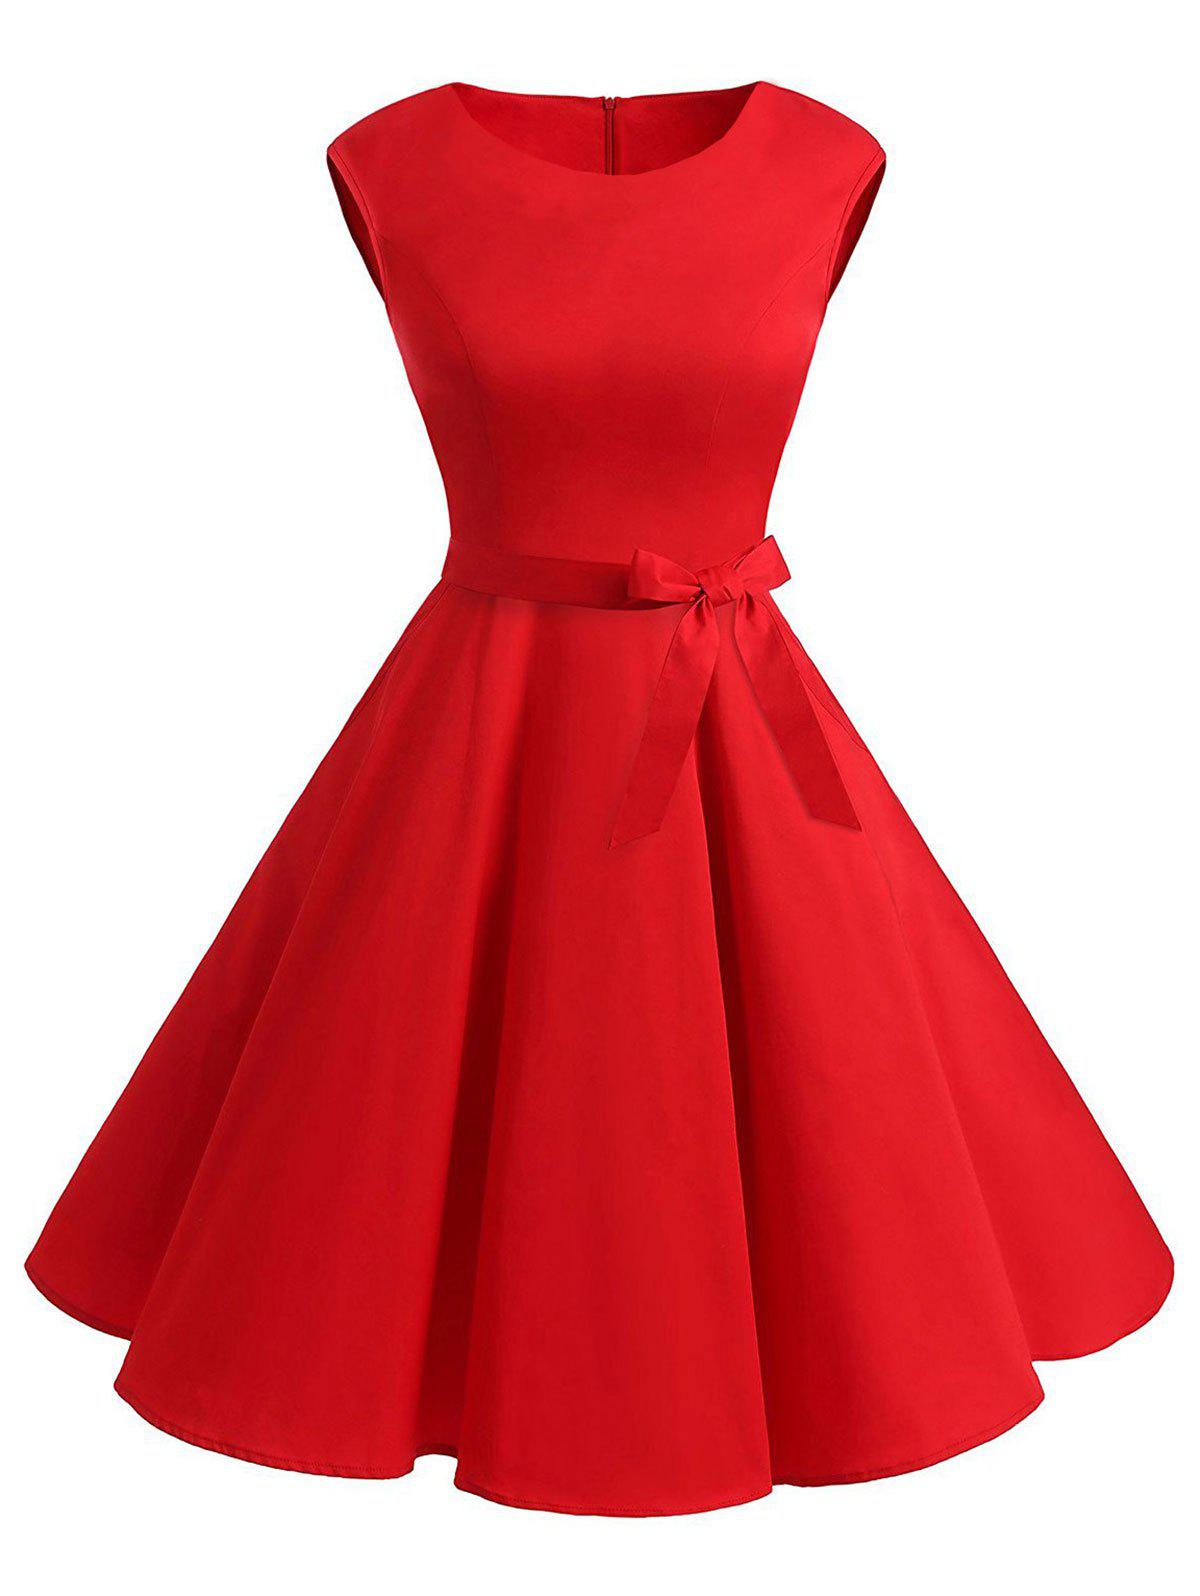 Retro Sleeveless Belted Skater Dress retro butterfly pattern skater dress